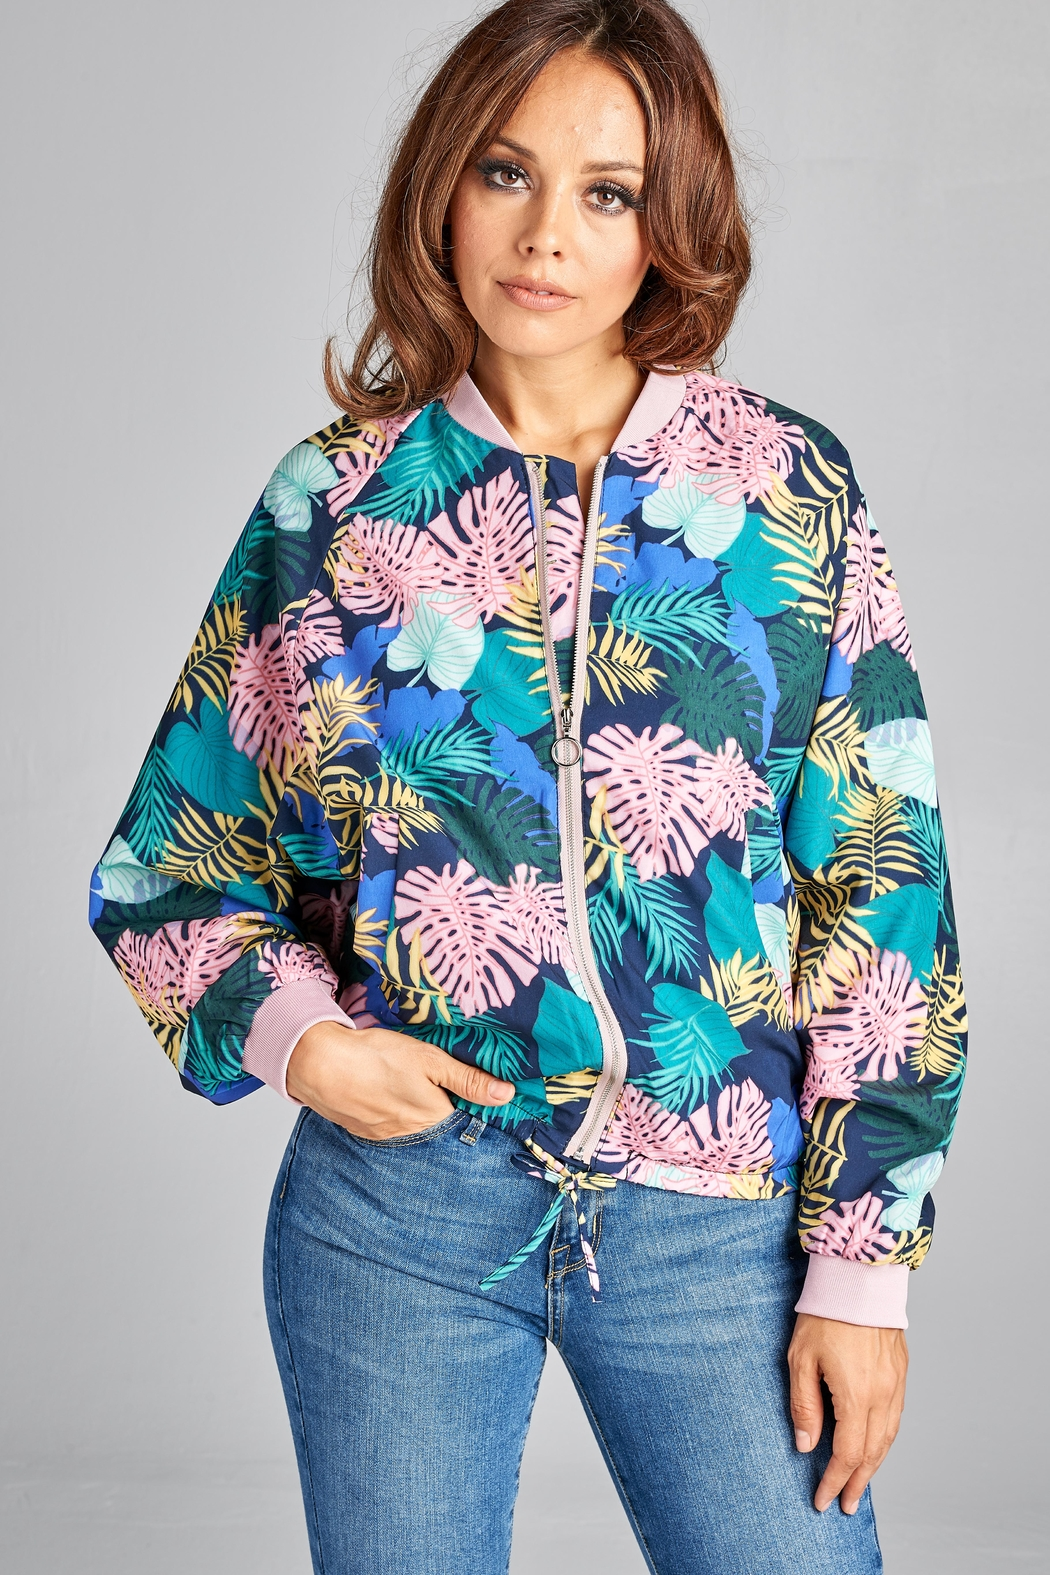 405a6eec0 Racine Tropical-Print Bomber Jacket from California by Racine Love ...